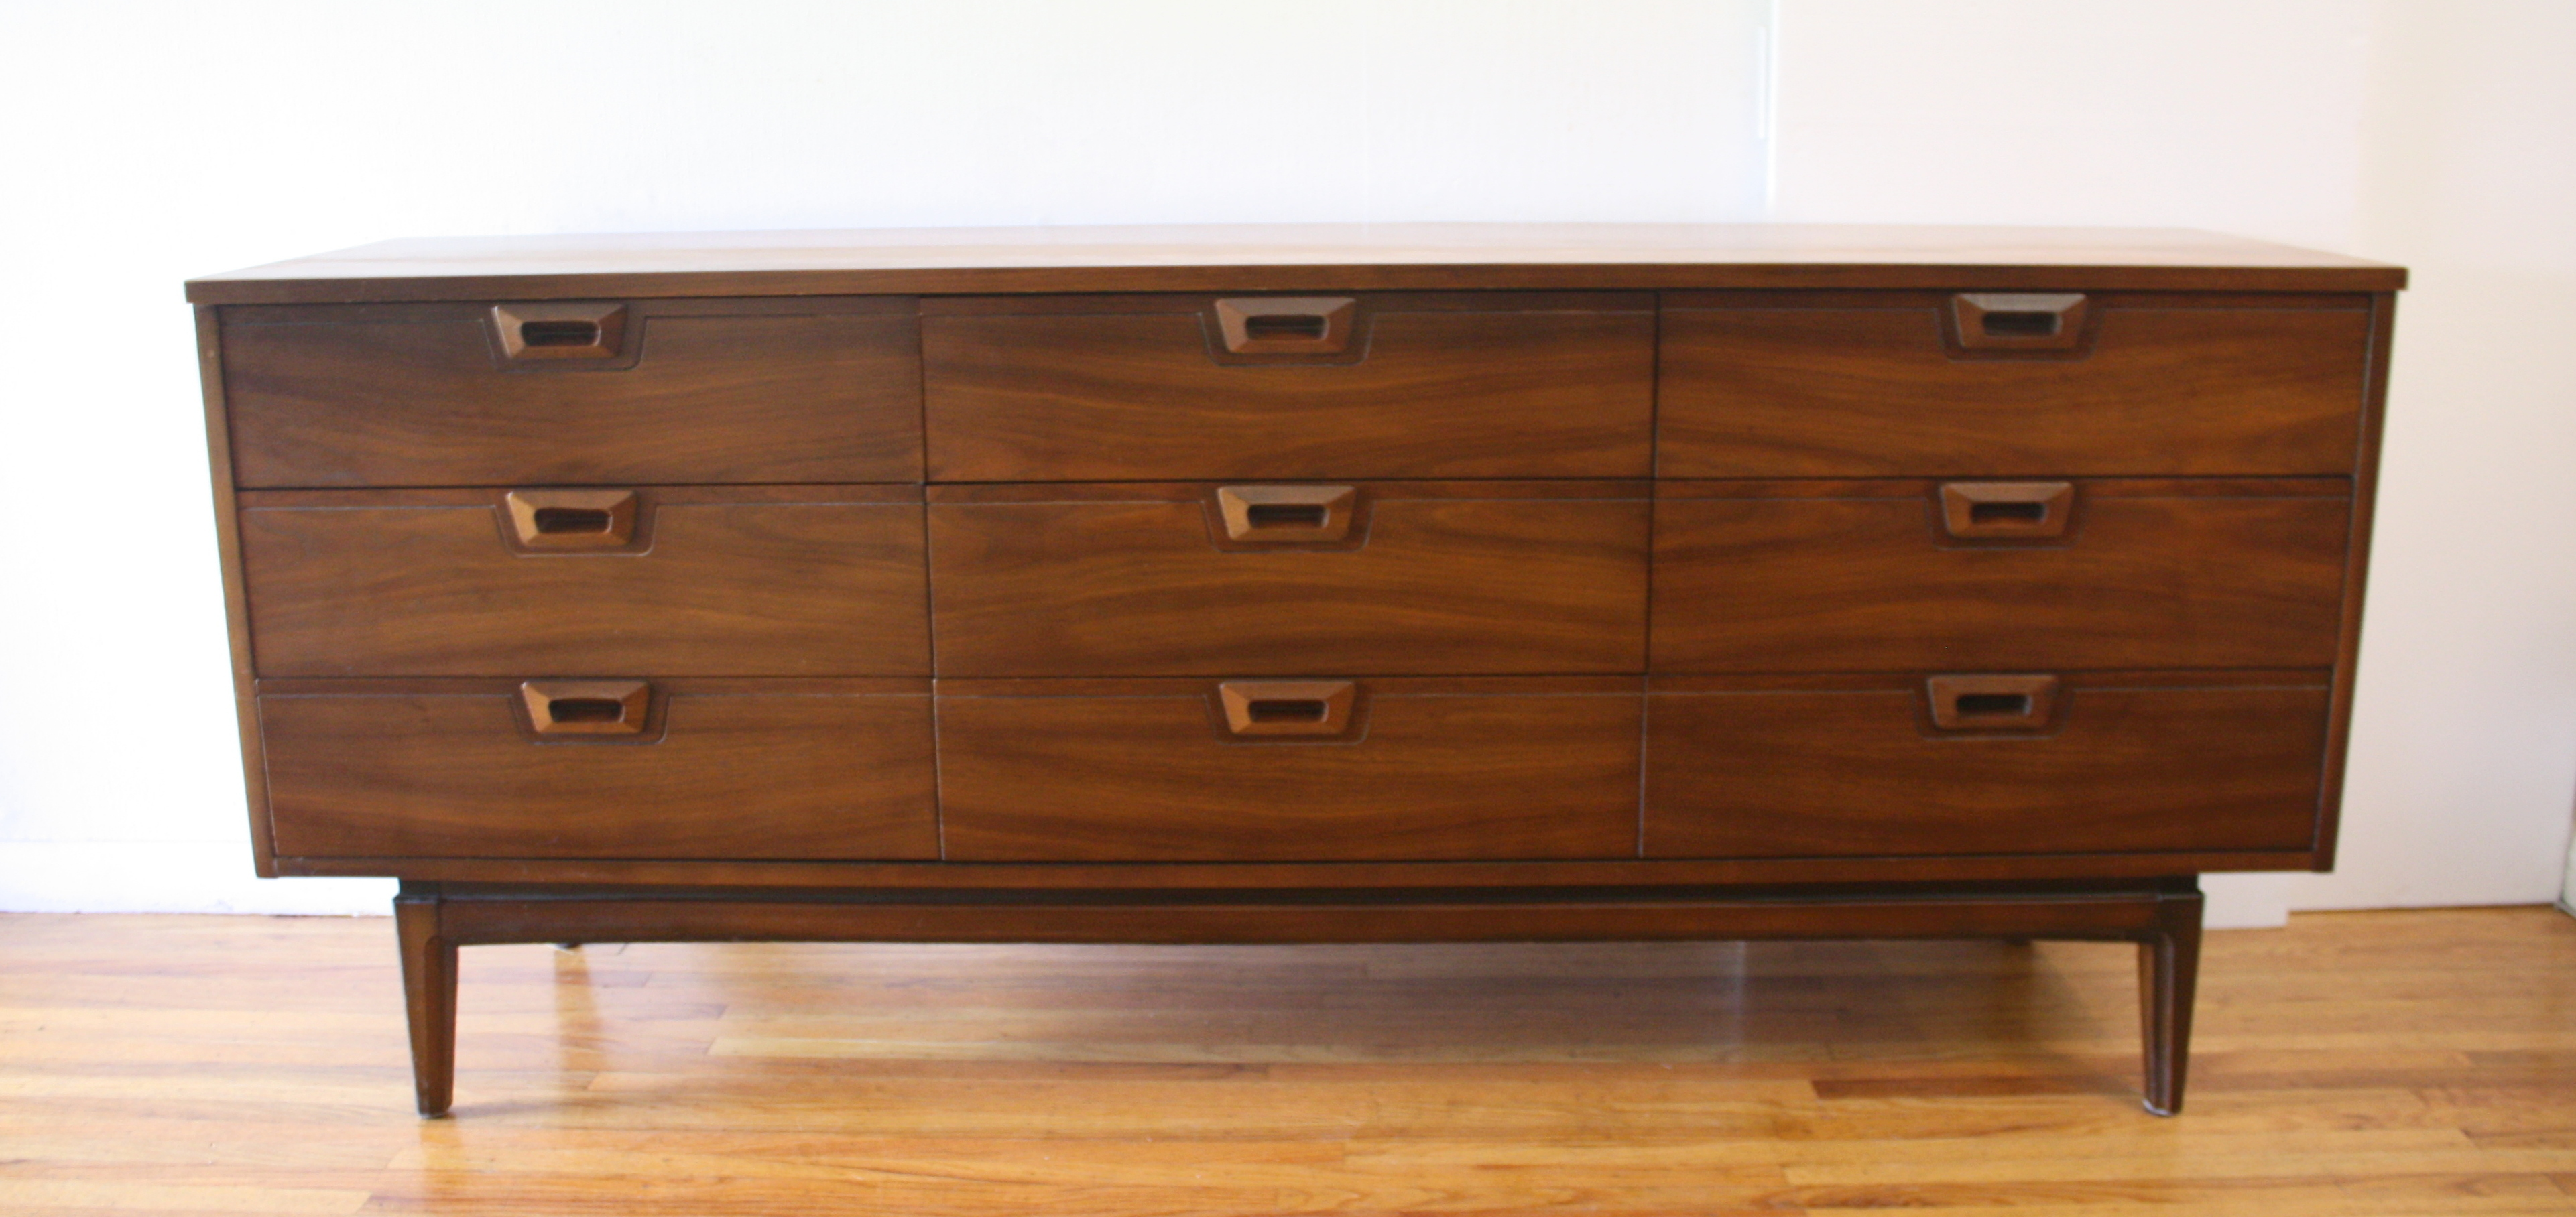 mcm low dresser credenza with carved handles 1.JPG